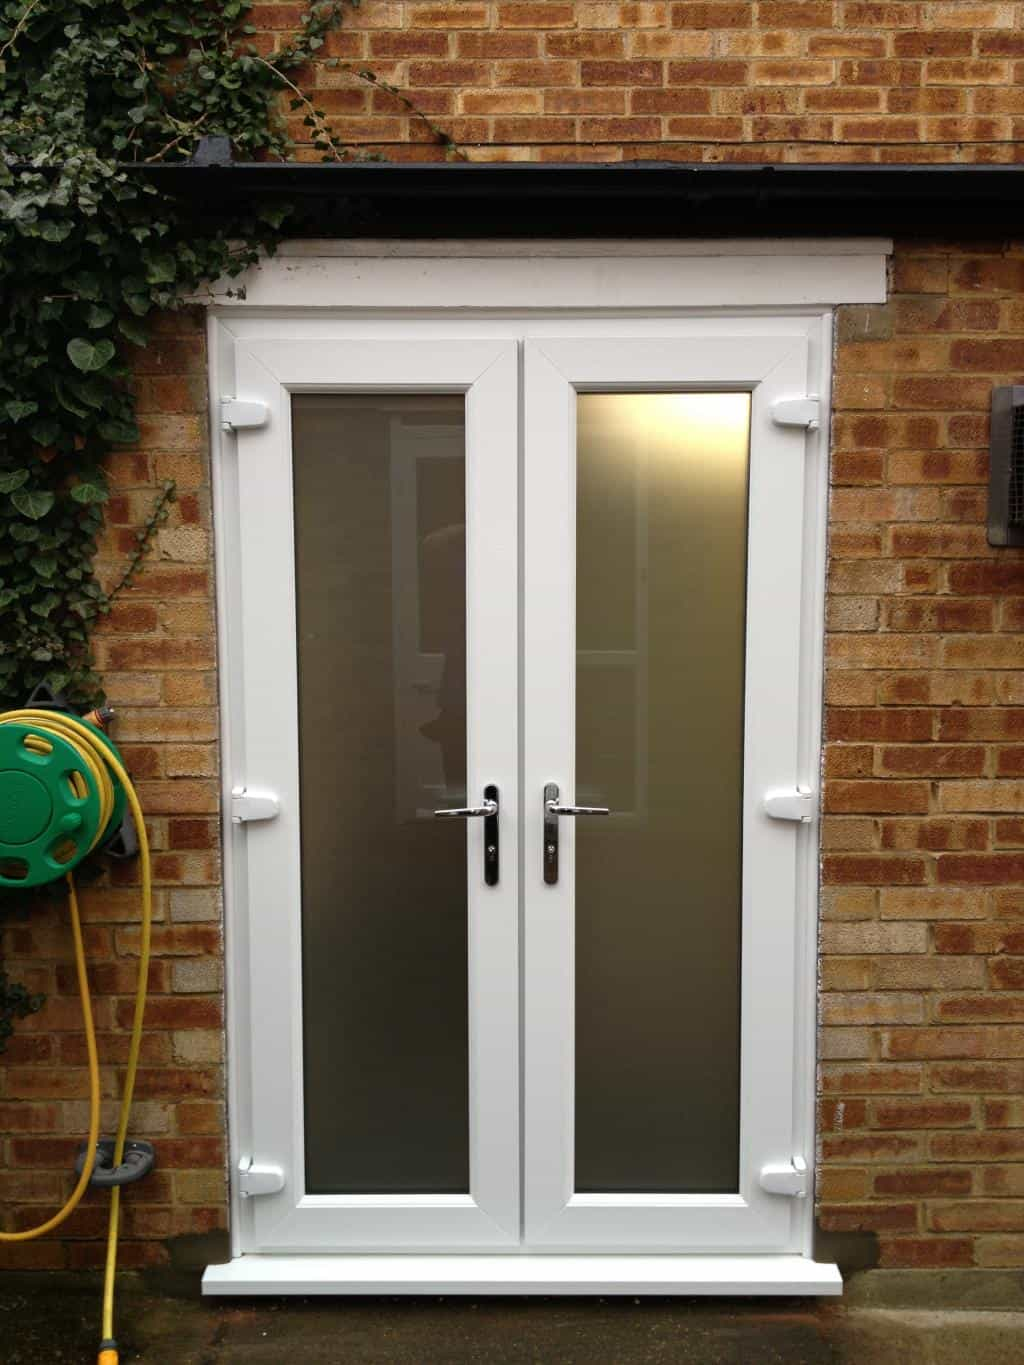 French Doors And Windows : Double glazing dorking new upvc windows and french doors